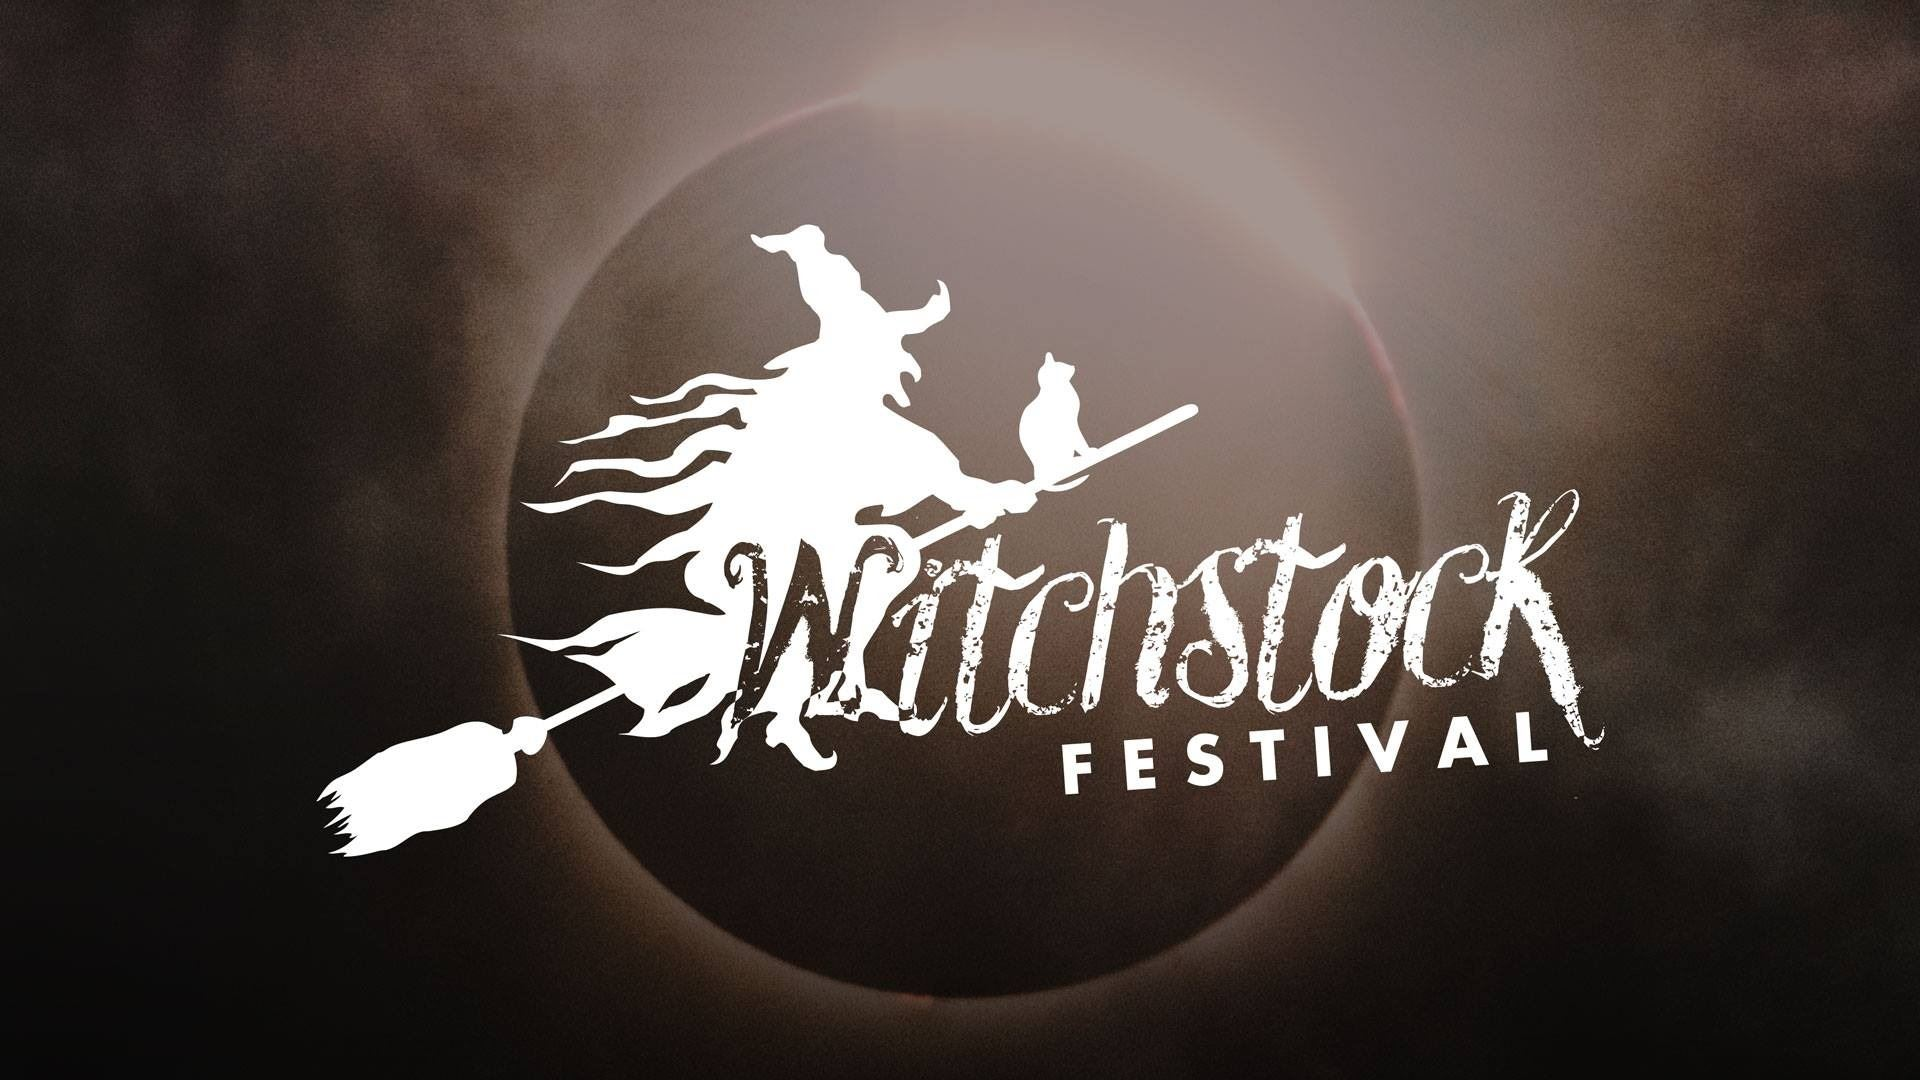 Witchstock Festival